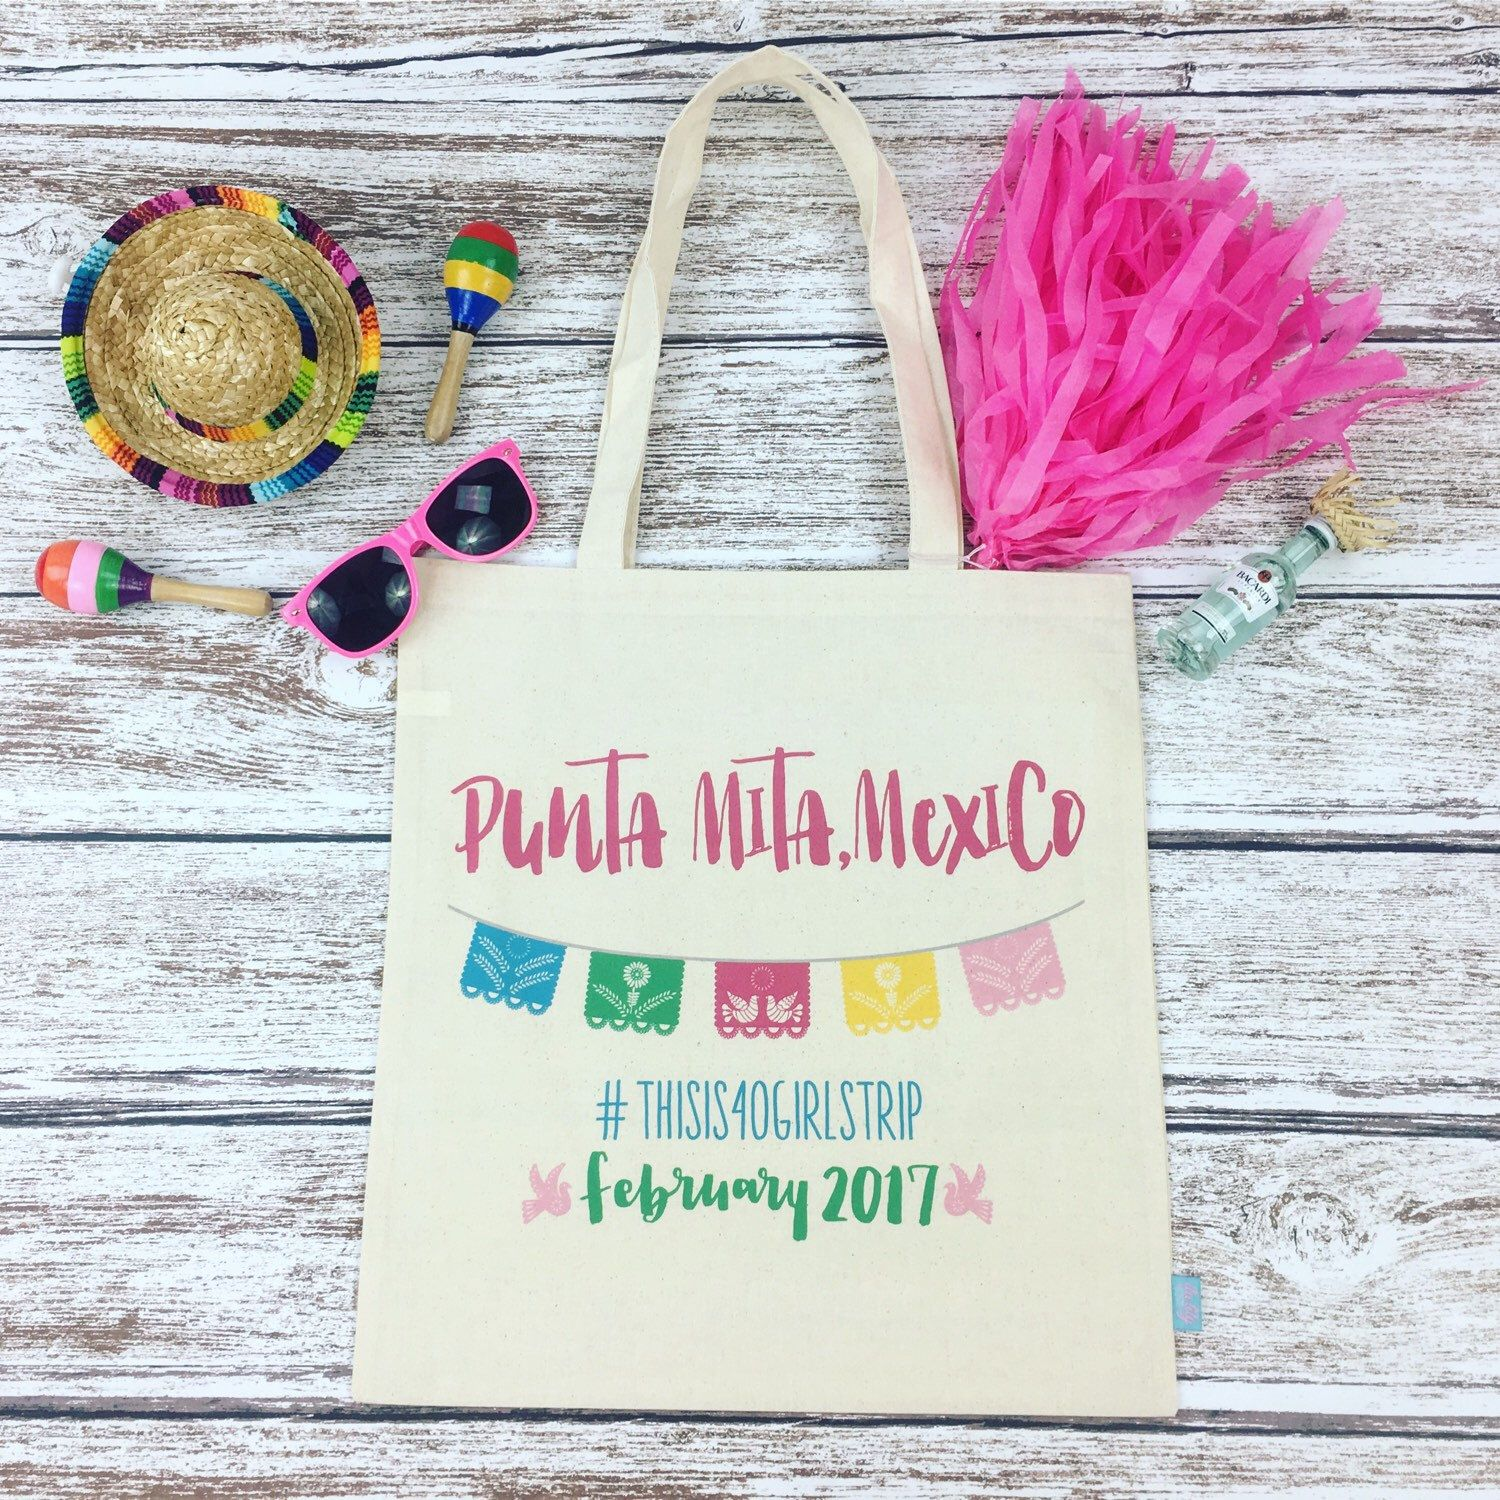 These adorable tote bags are off to Punta Mita, Mexico! Planning a ...